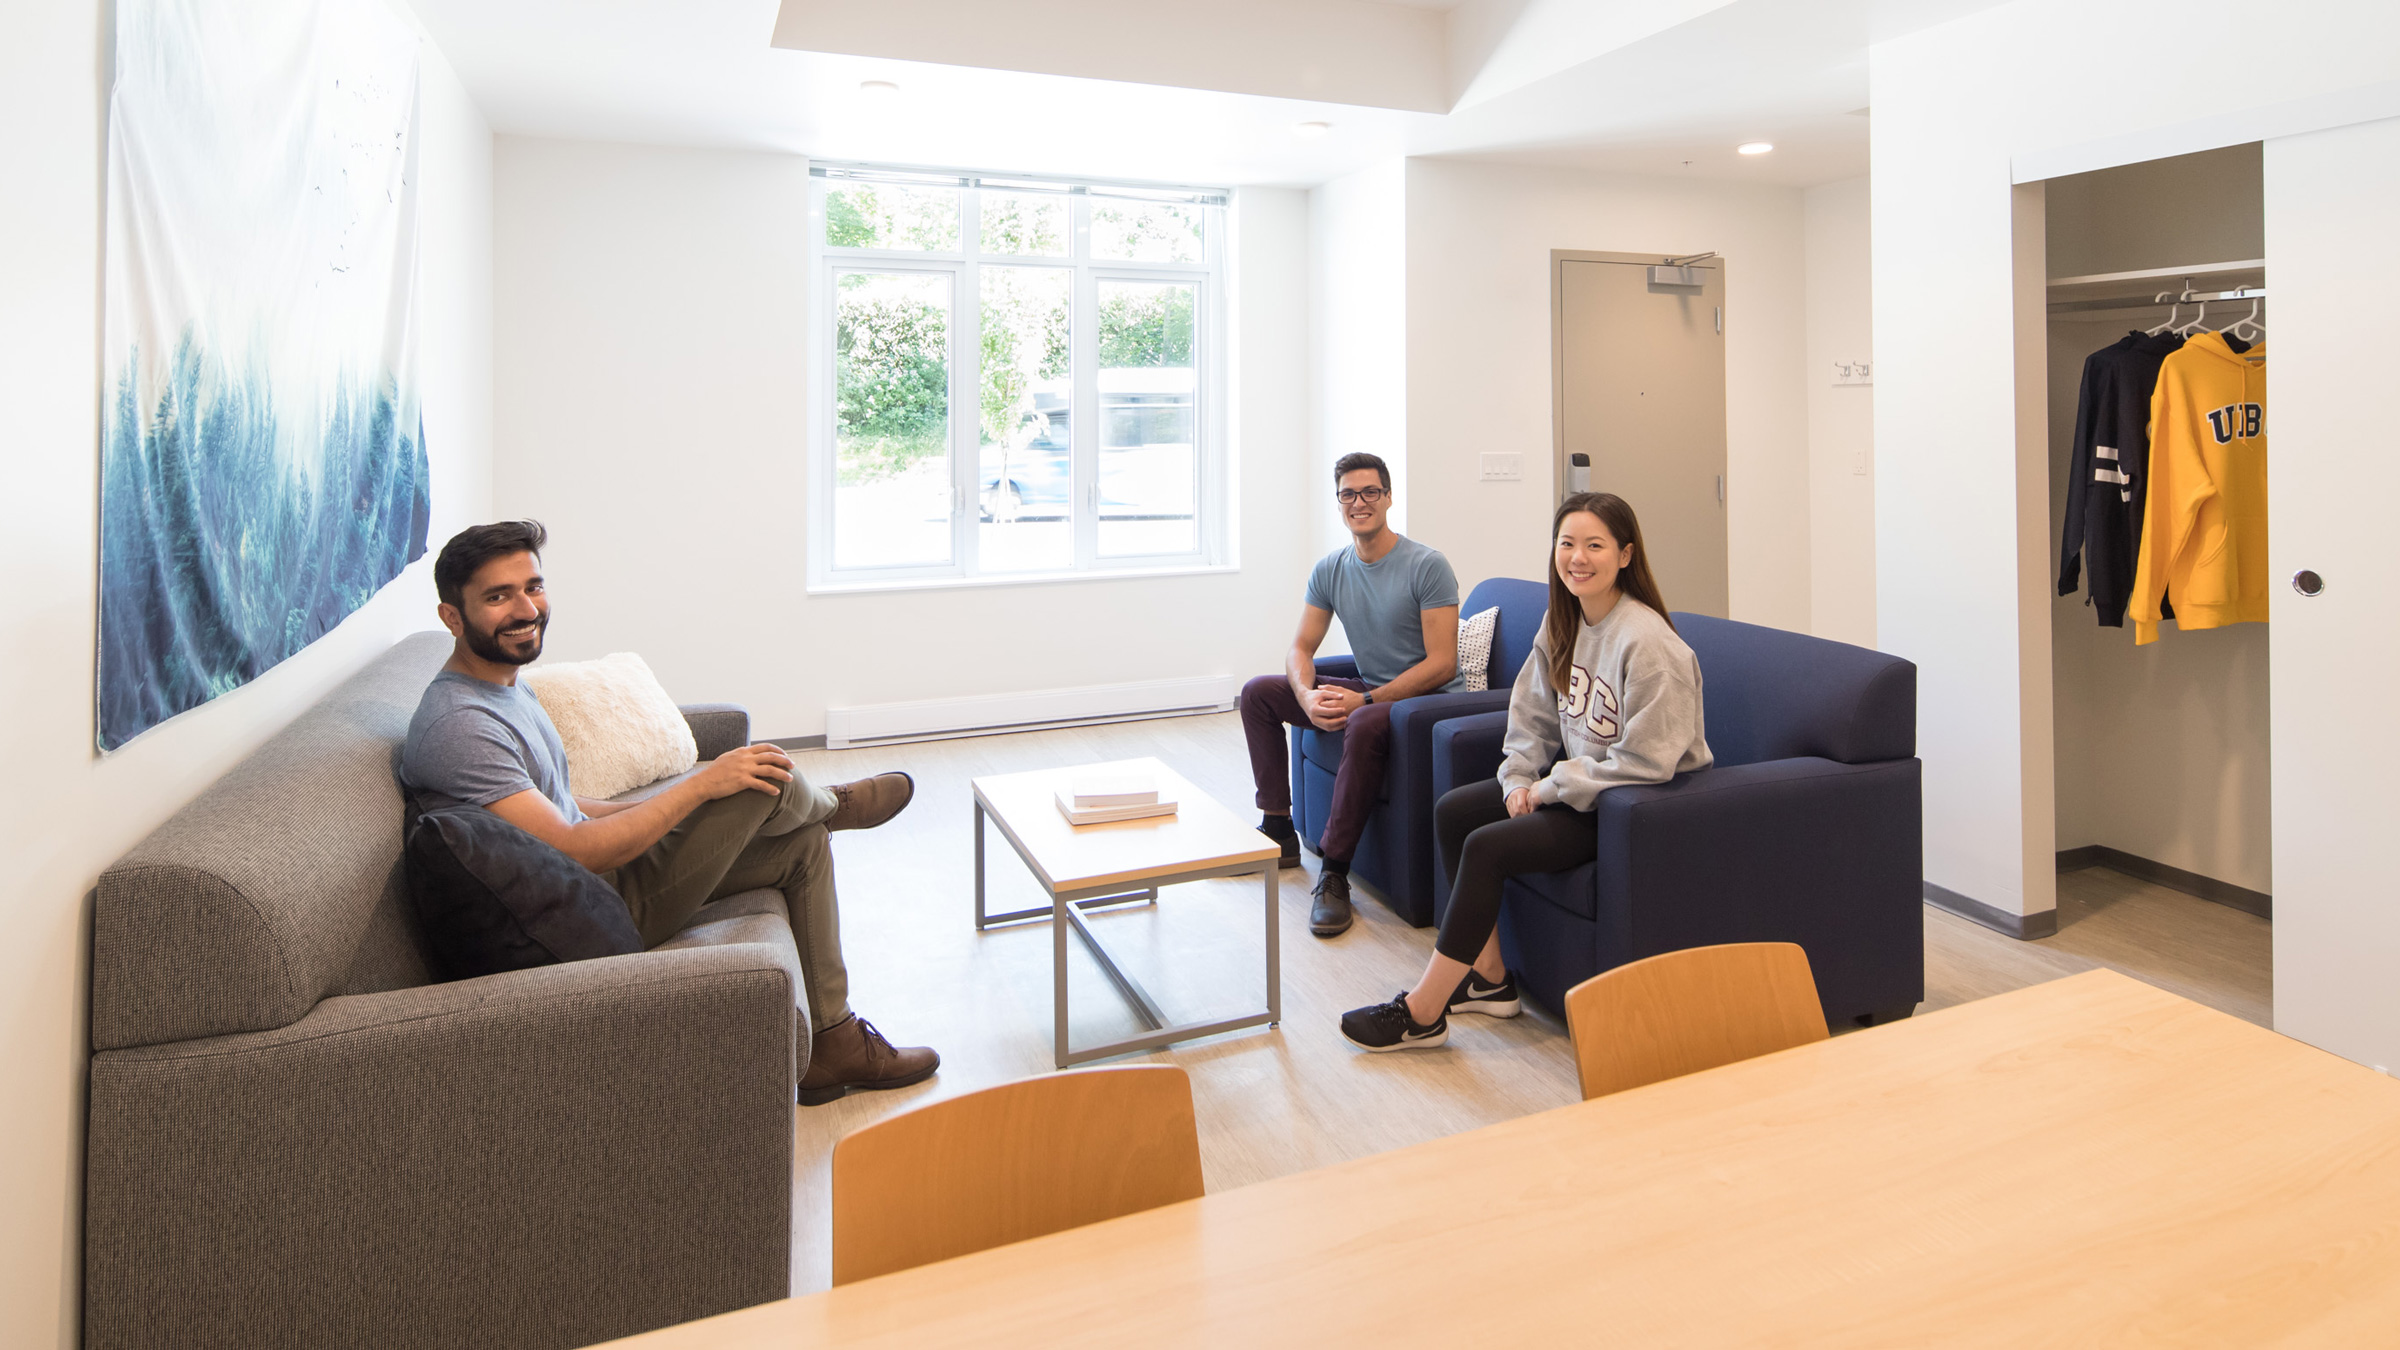 Three smiling students sit in the living room area of a residence room.